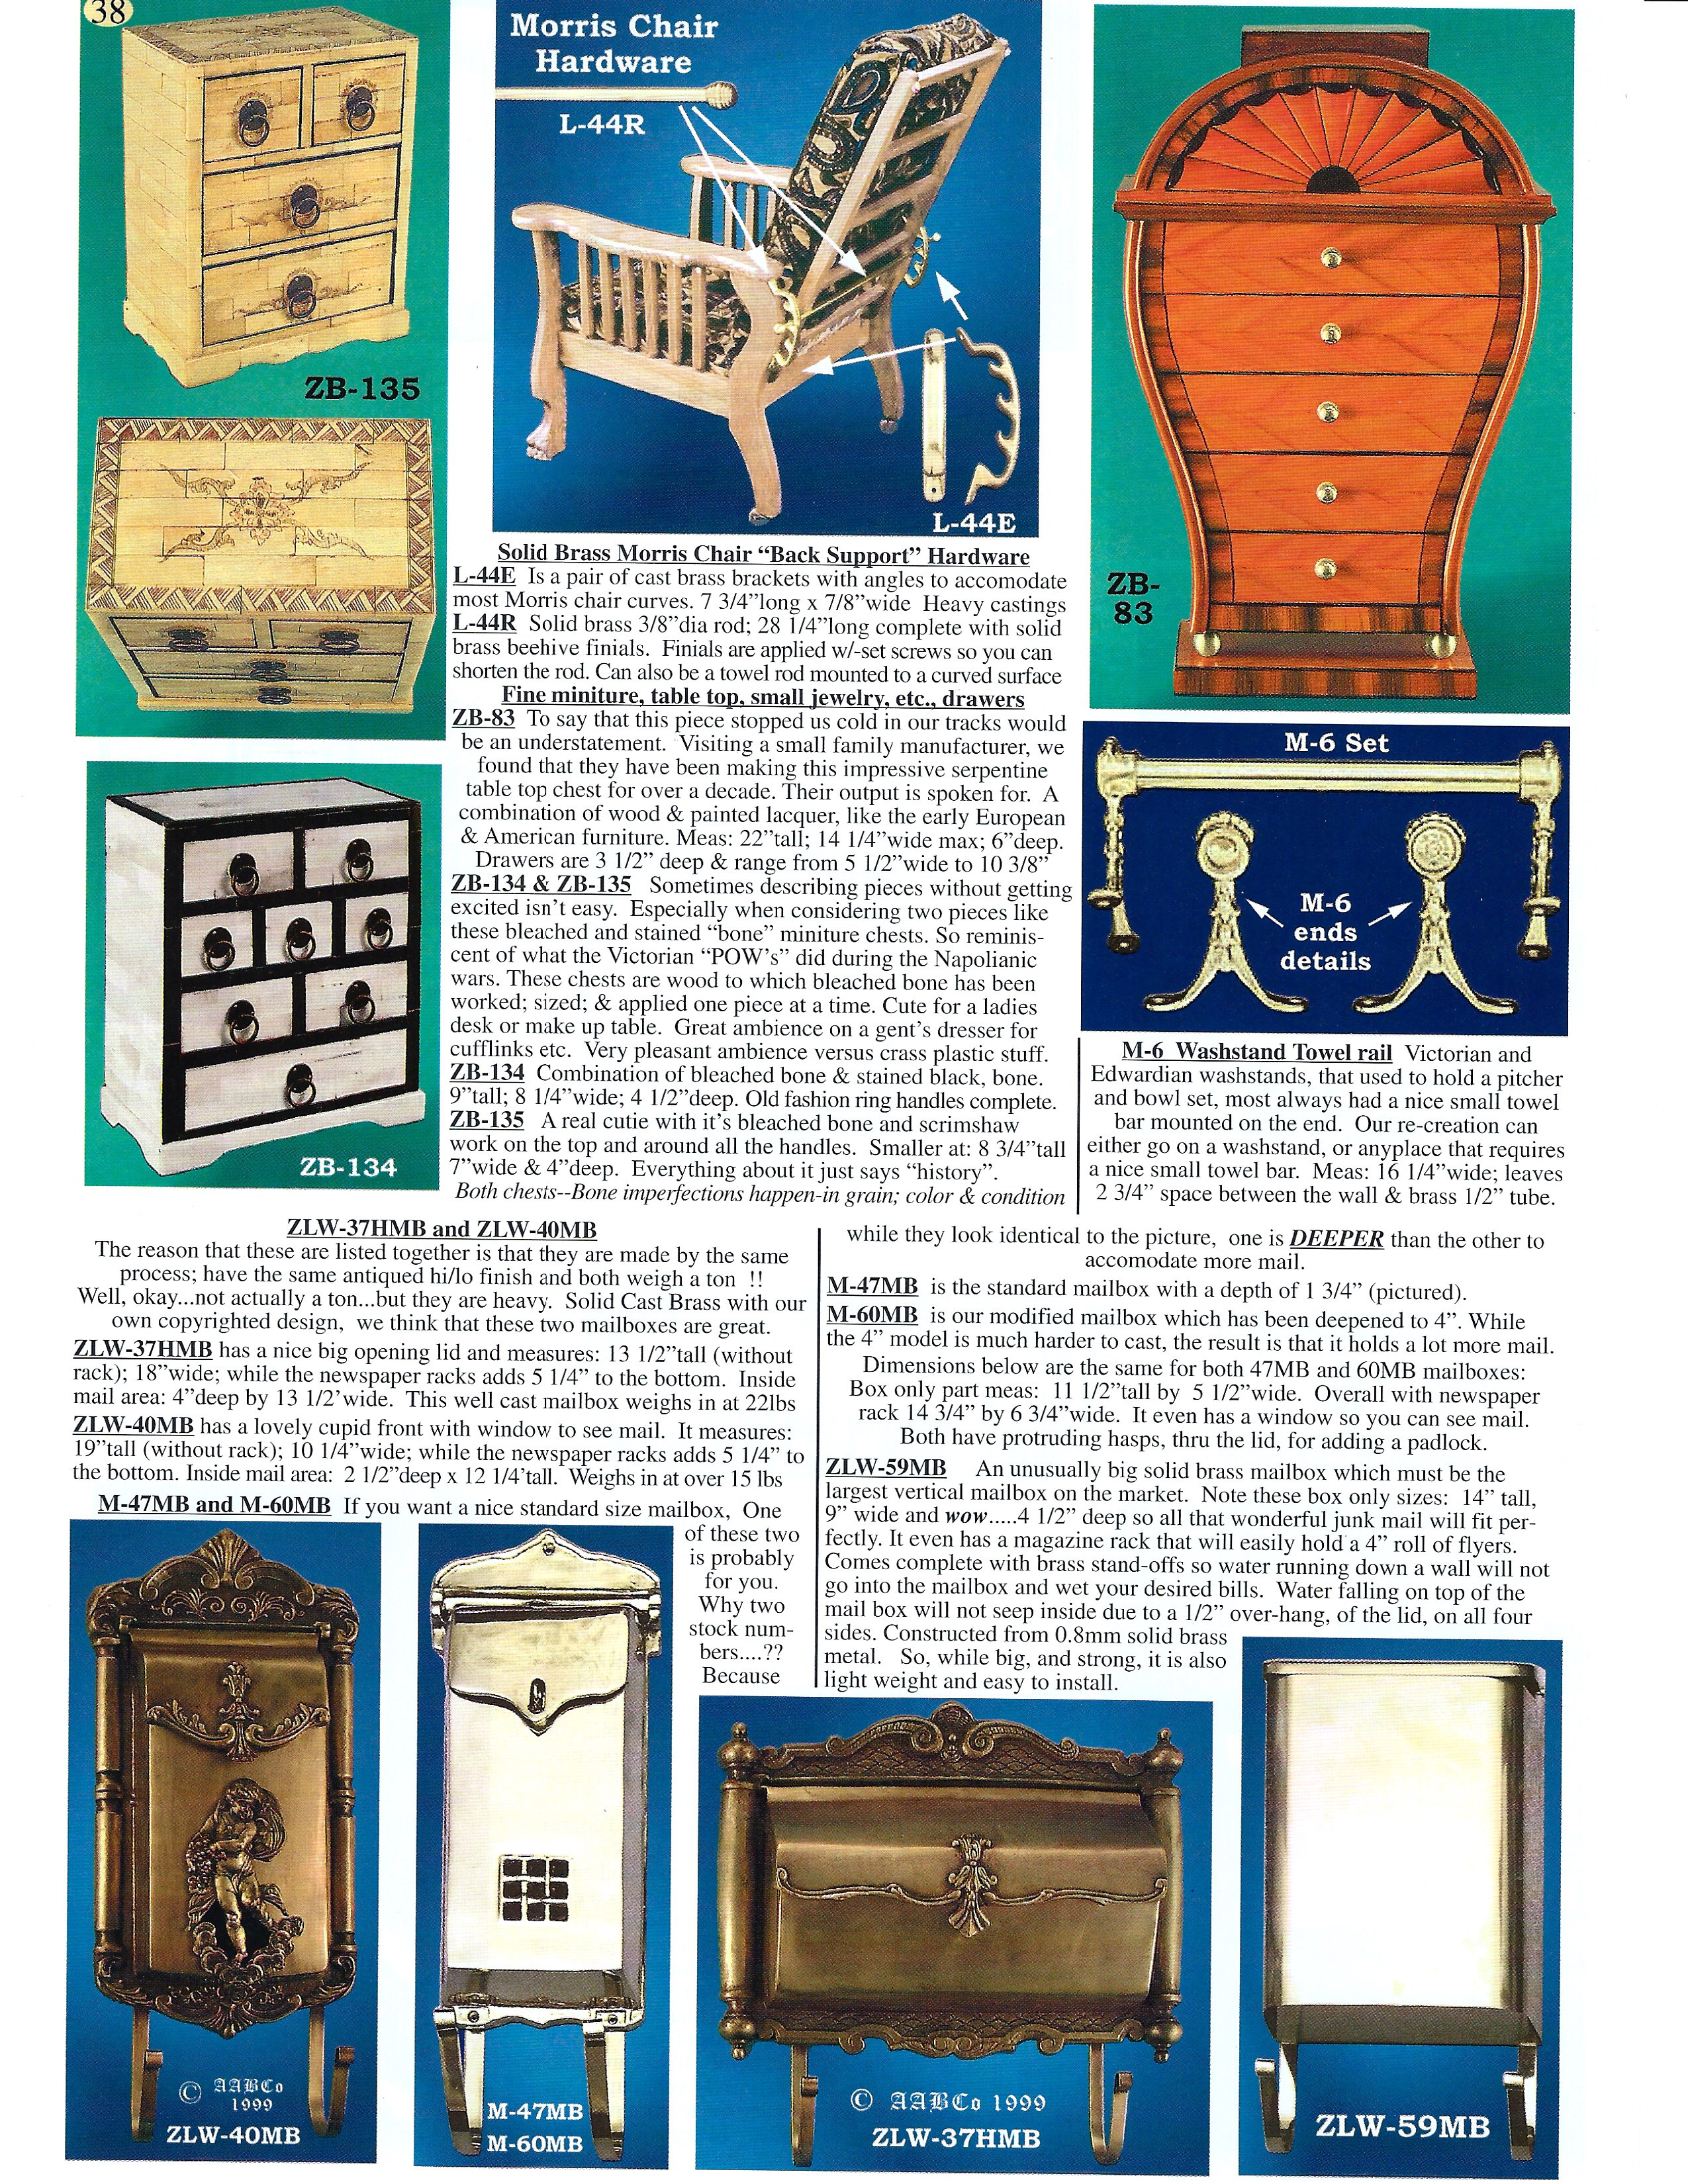 Catalog page 38